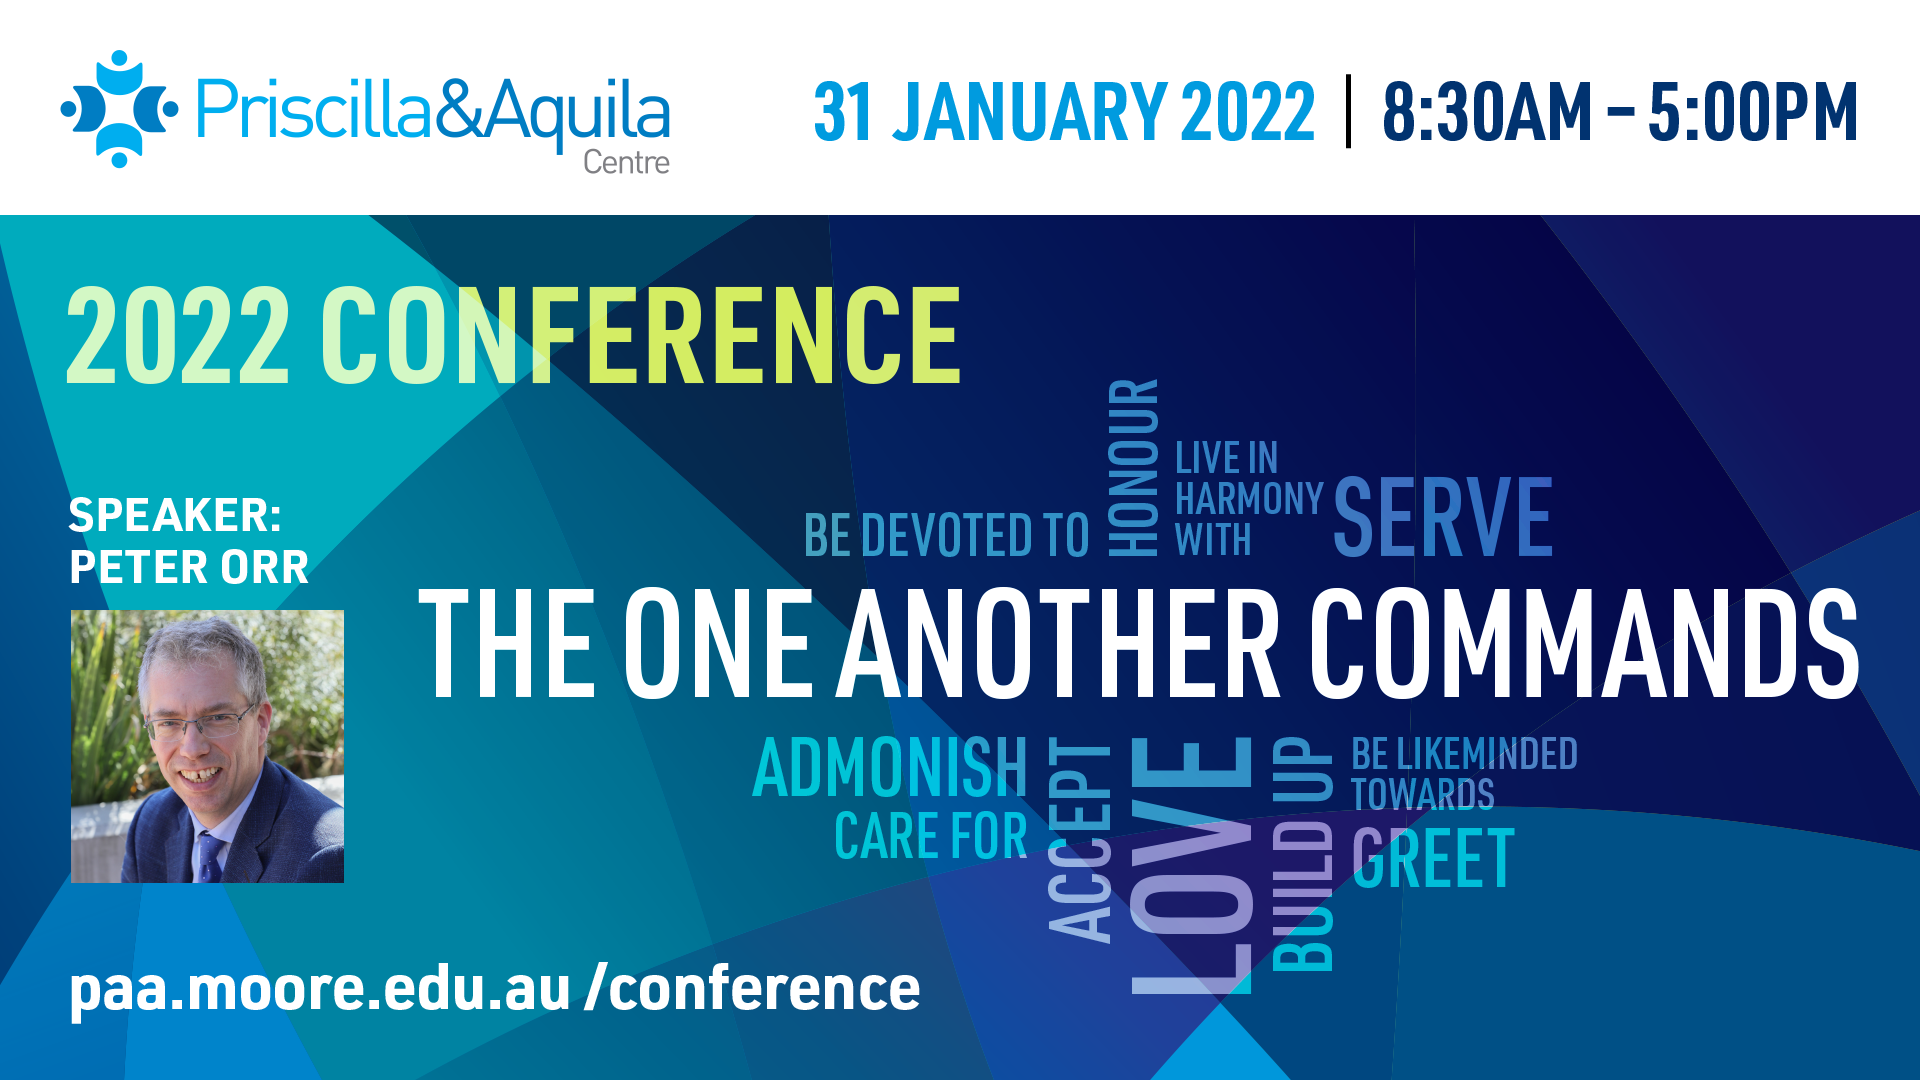 2022 Priscilla & Aquila annual conference: The one another commands